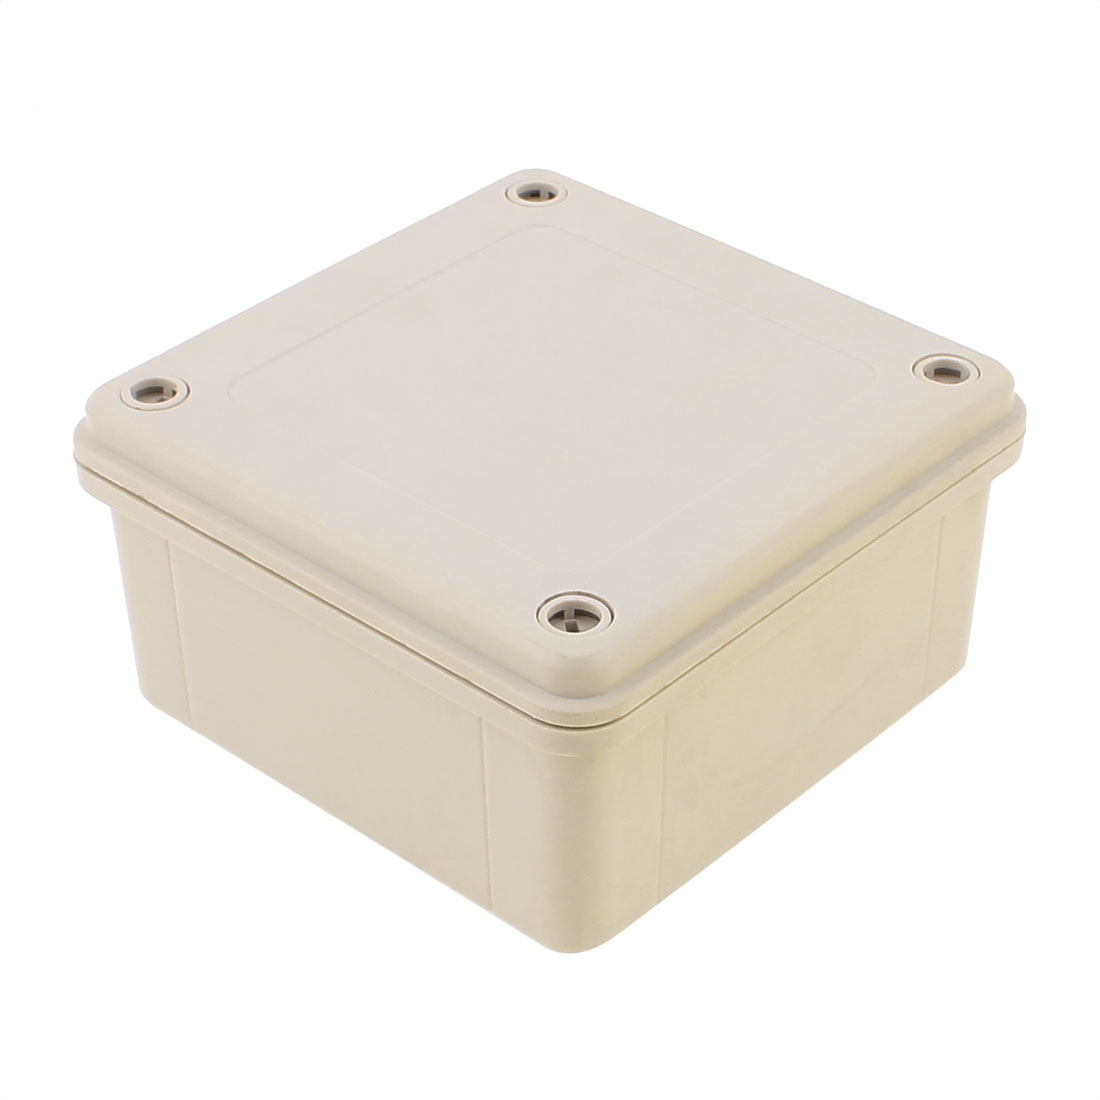 120 x 120 x 60mm Dustproof IP65 Junction Box DIY Terminal Connecting Box Enclosure